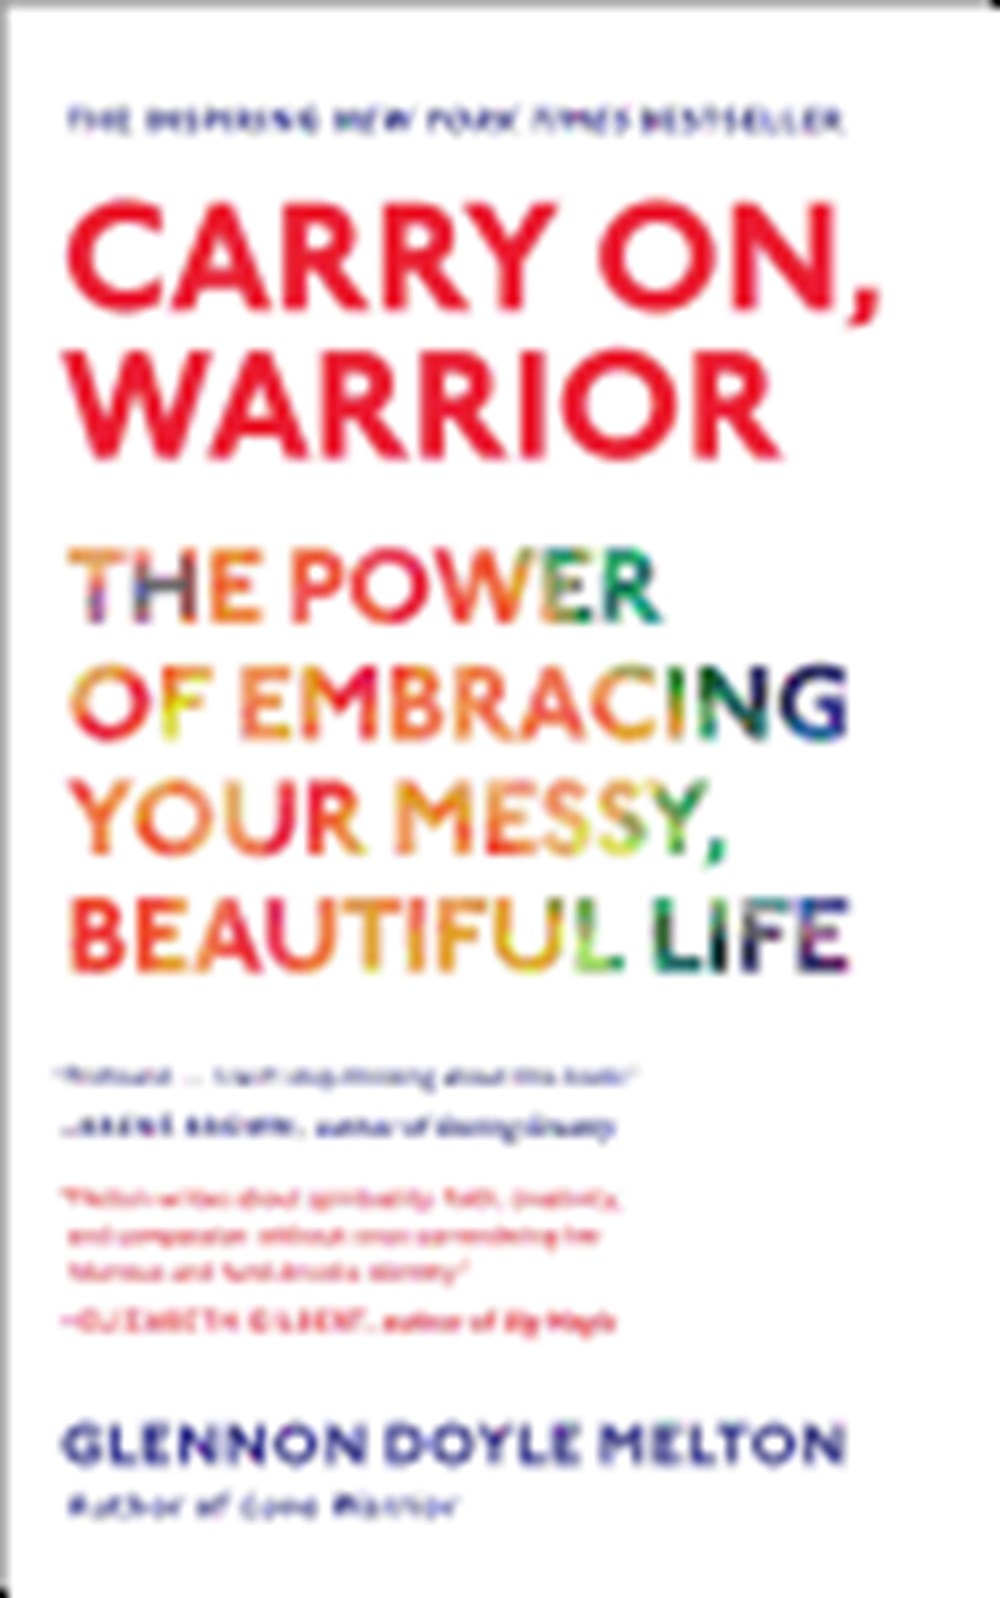 Carry On, Warrior The Power of Embracing Your Messy, Beautiful Life